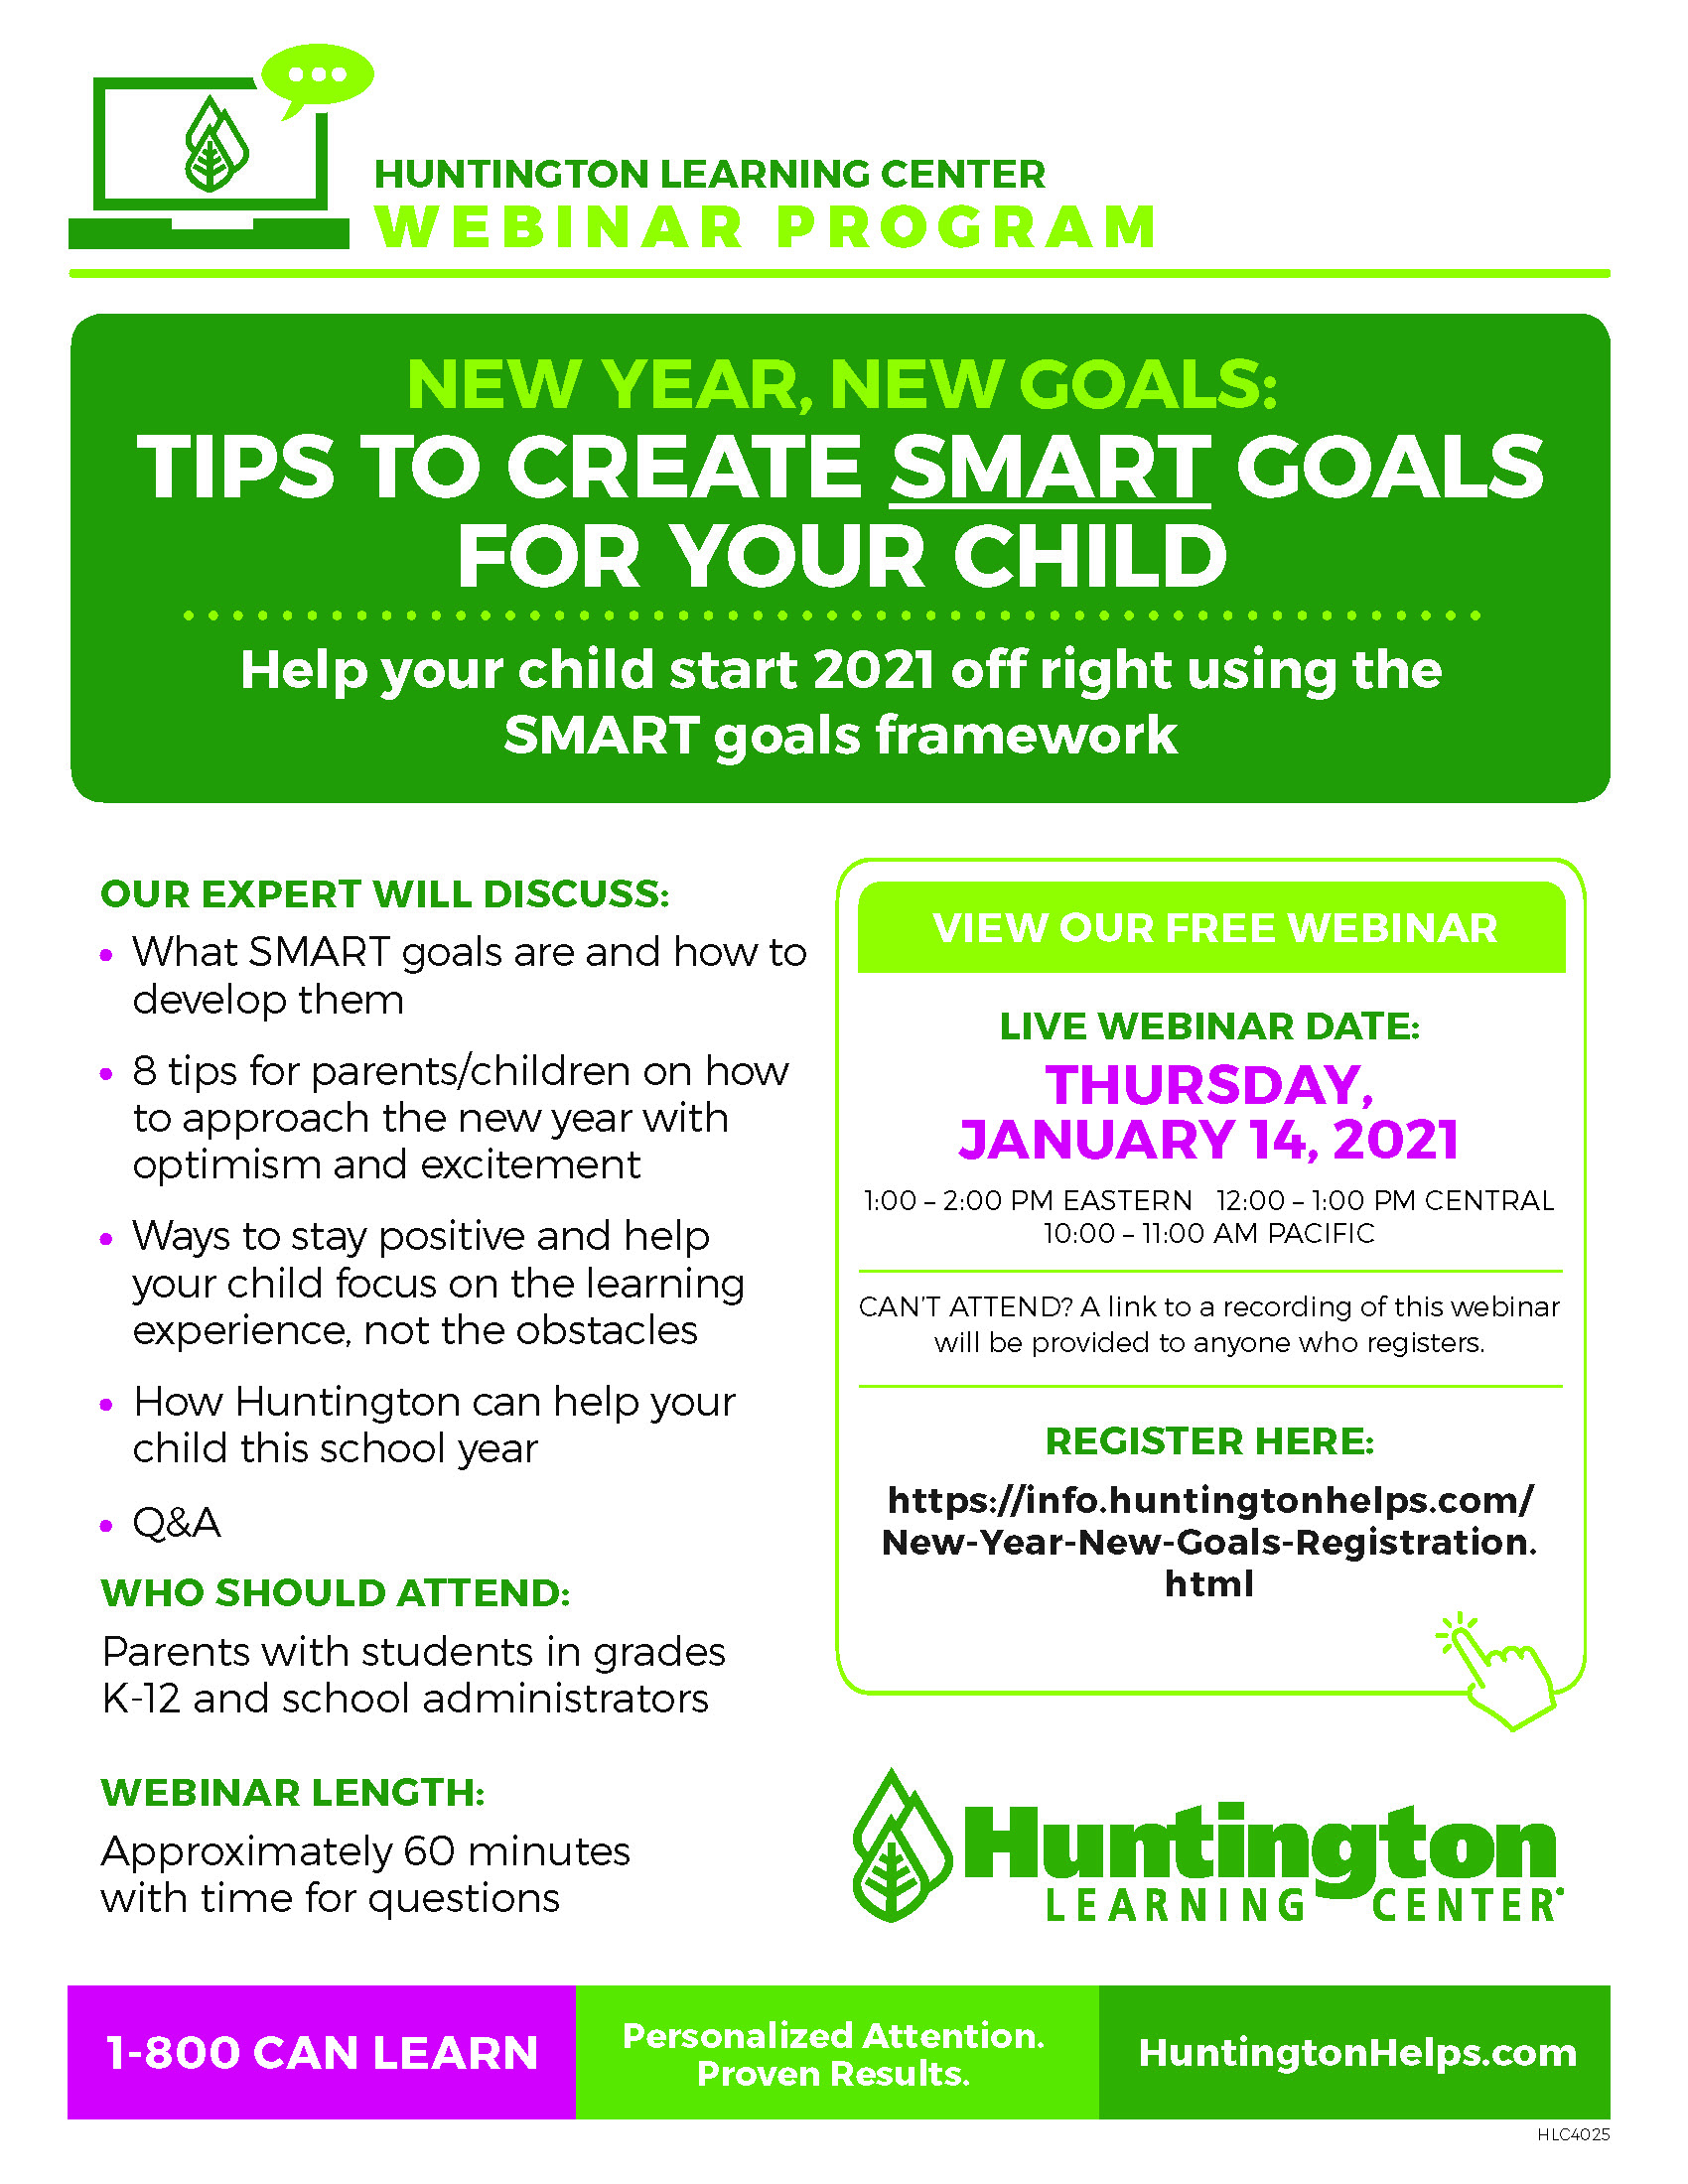 ONLINE Tips to Create SMART Goals for your Child at Huntington Learning Center